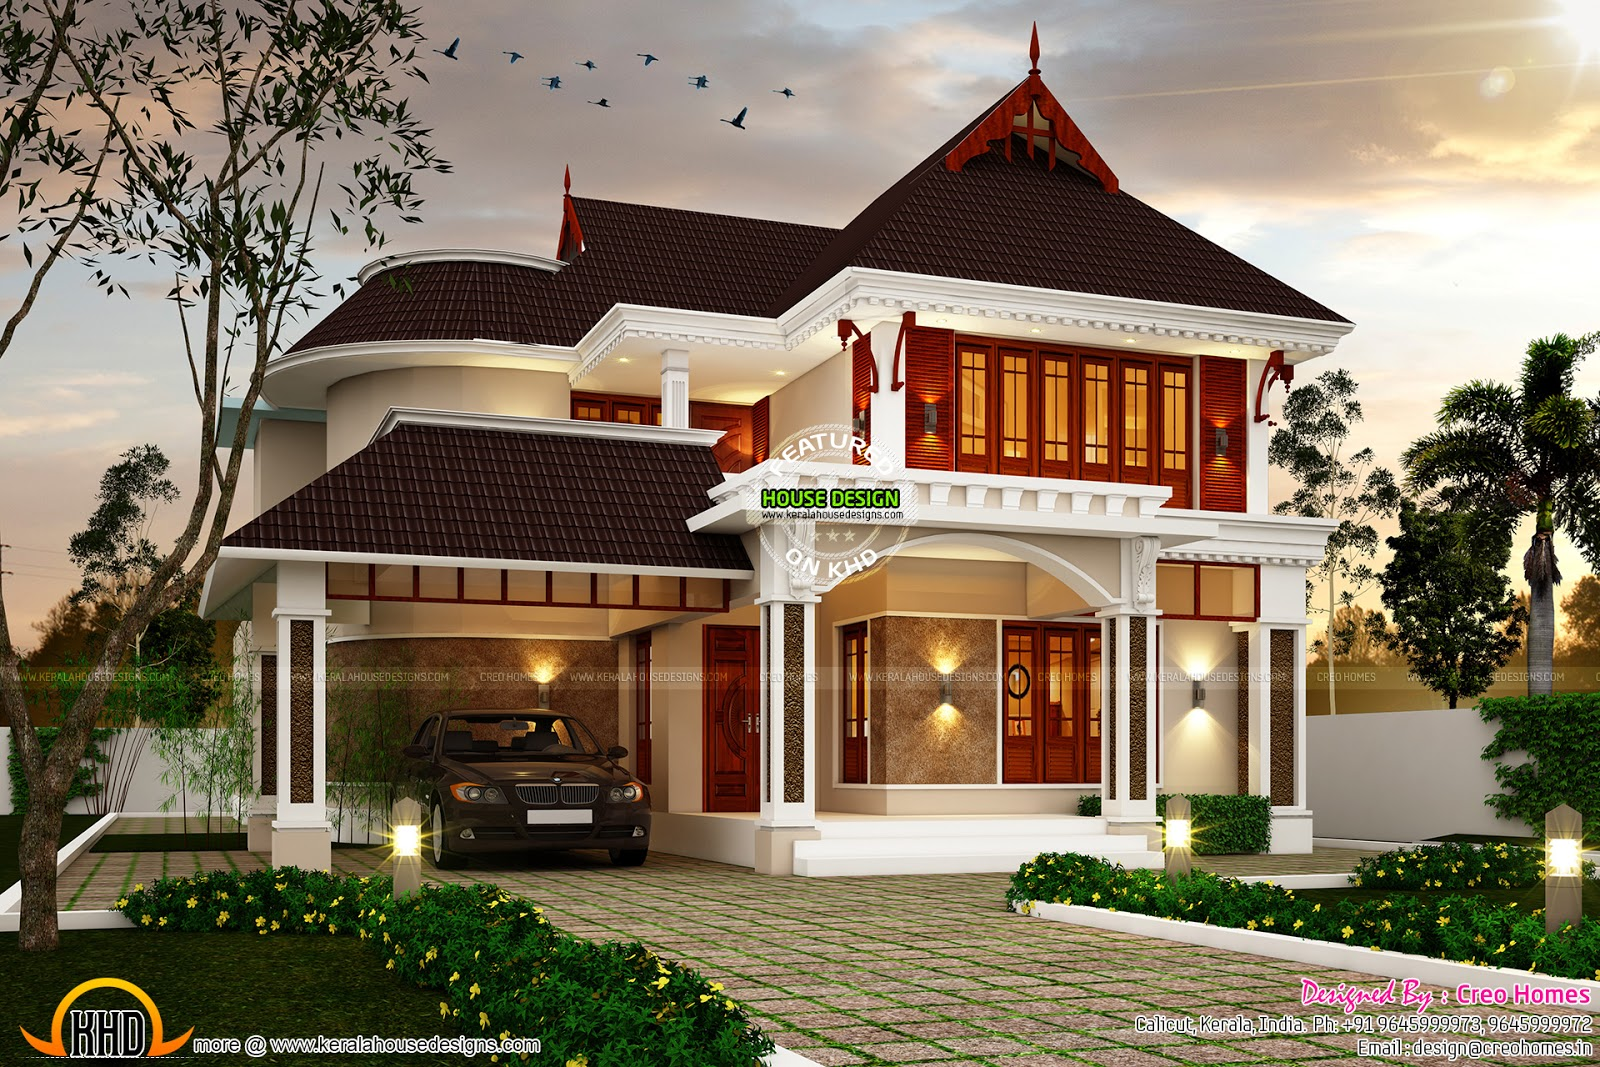 Superb dream house plan - Kerala home design and floor plans